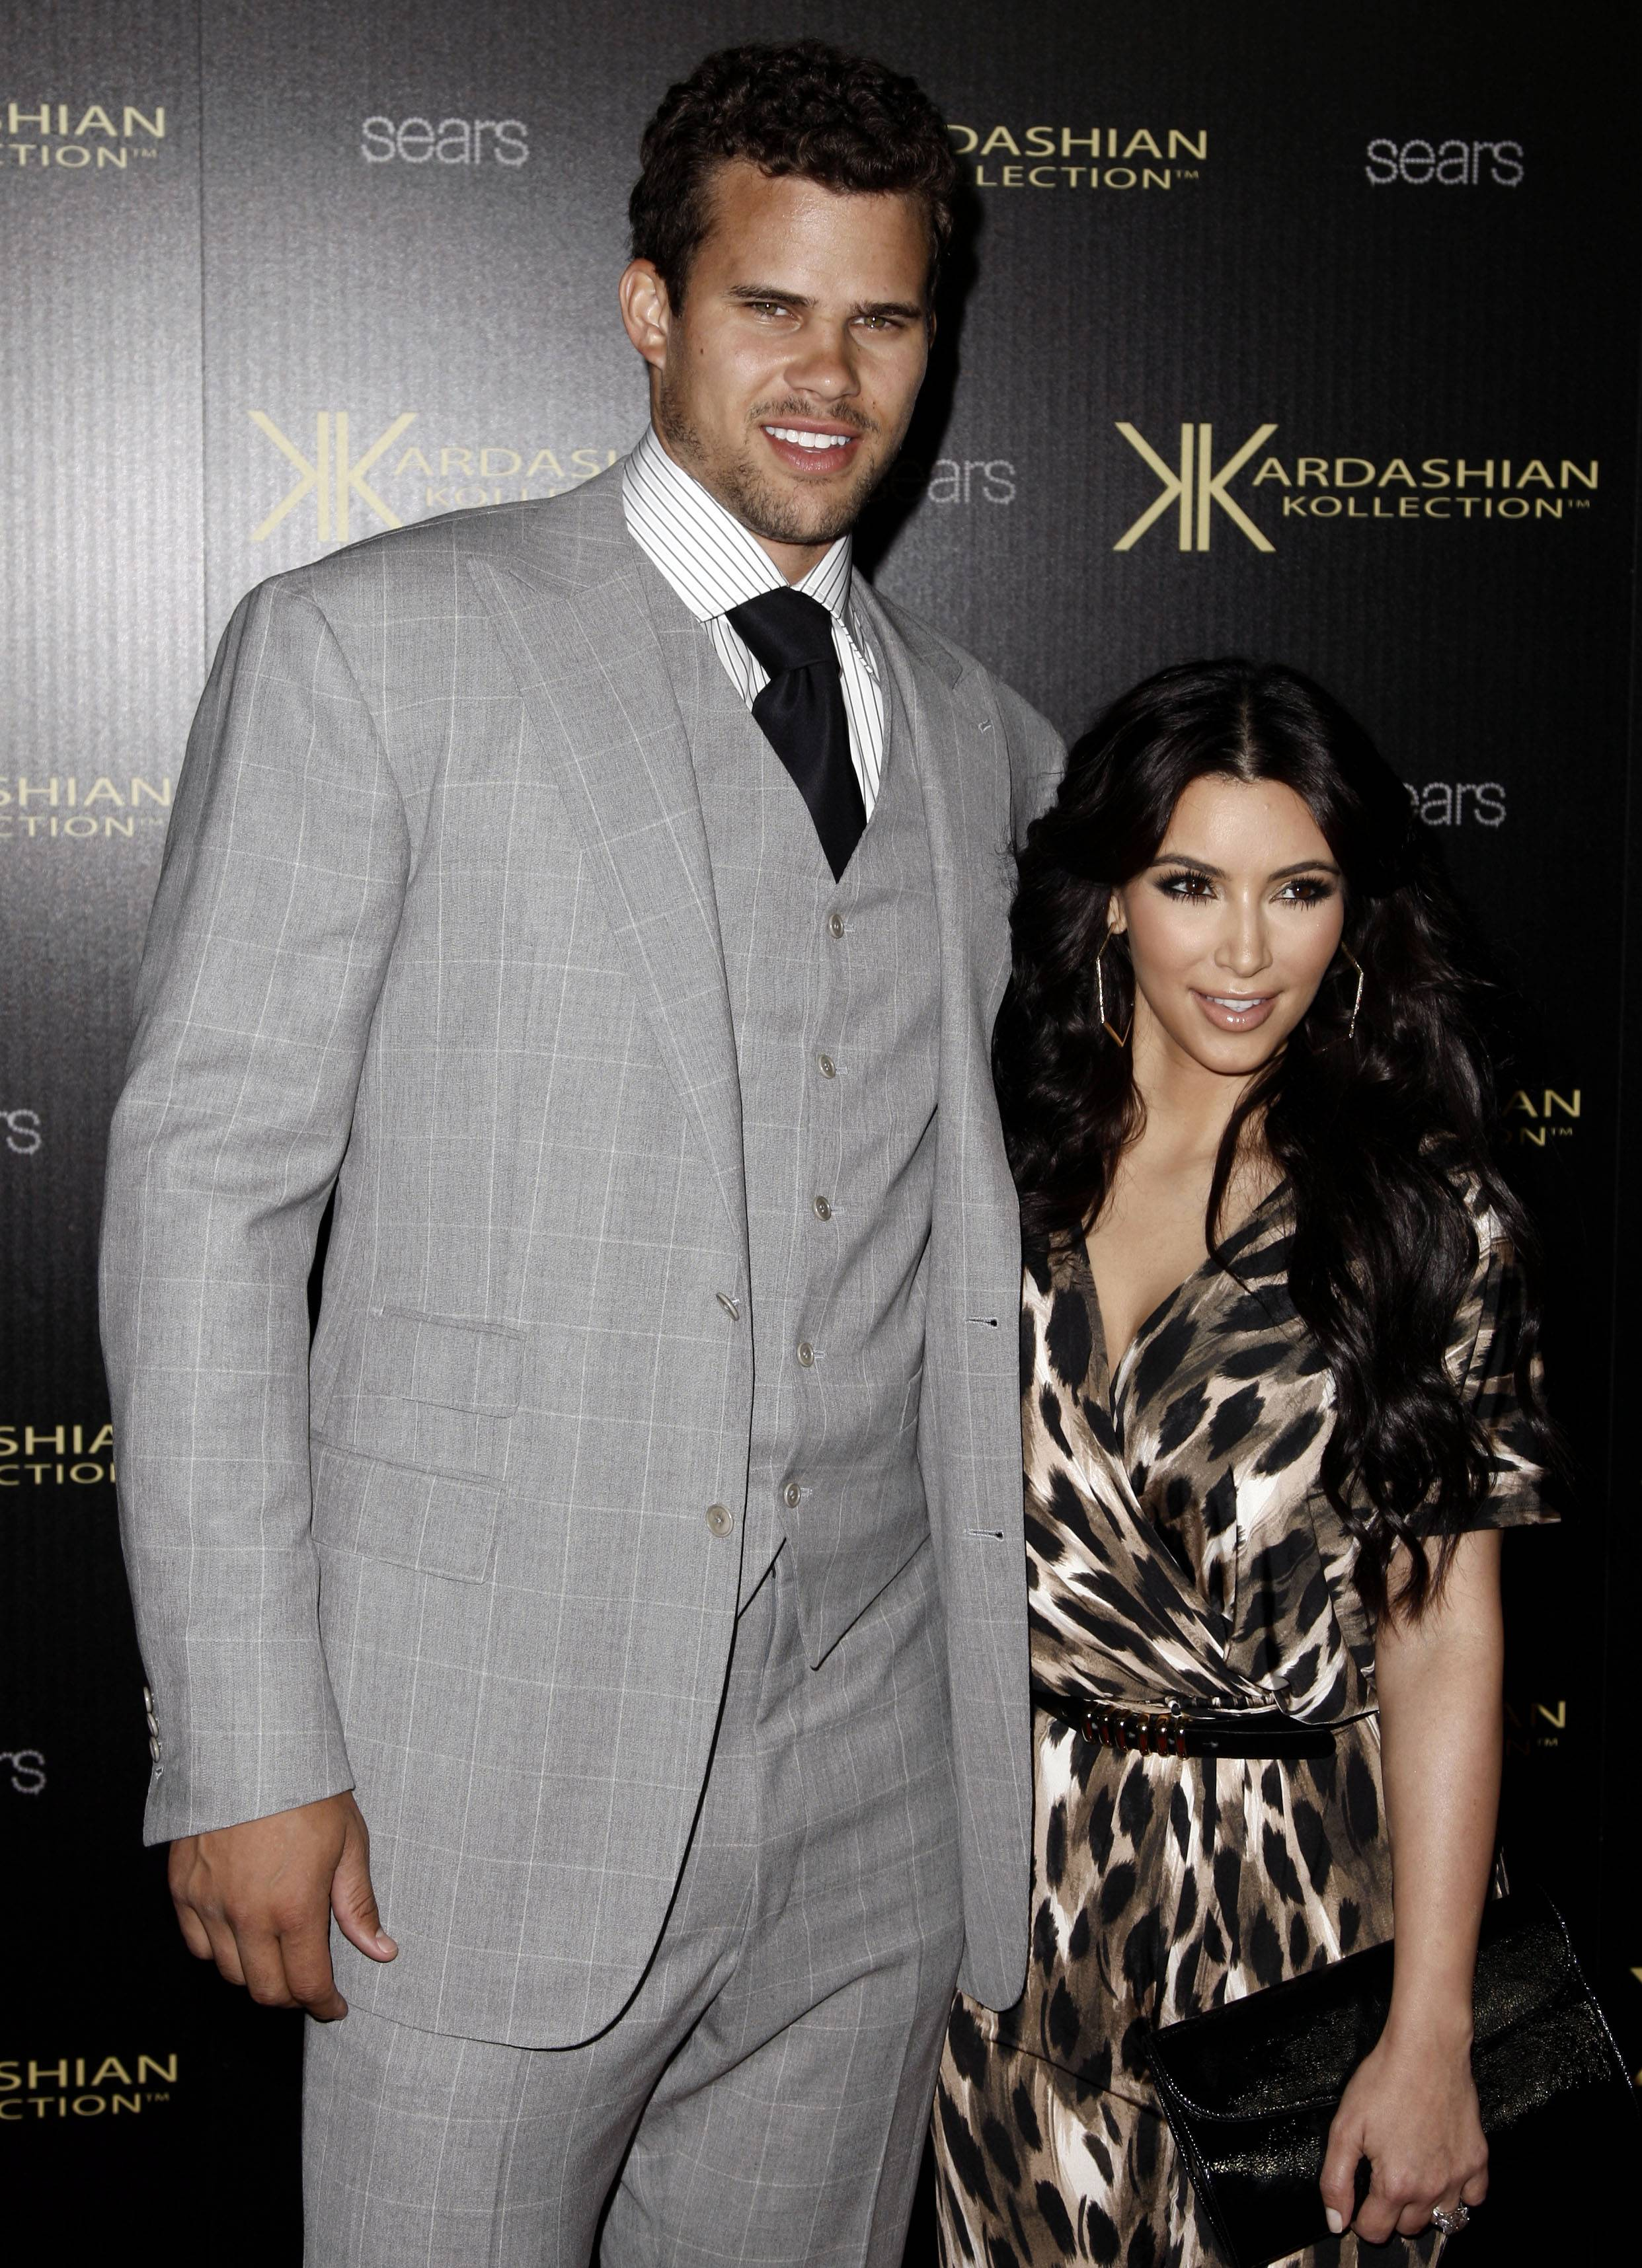 Reality TV starlet Kim Kardashian and NBA basketball player Kris Humphries are set to be married Saturday in a lavish, made-for-TV celebration of love, devotion and product-placement.